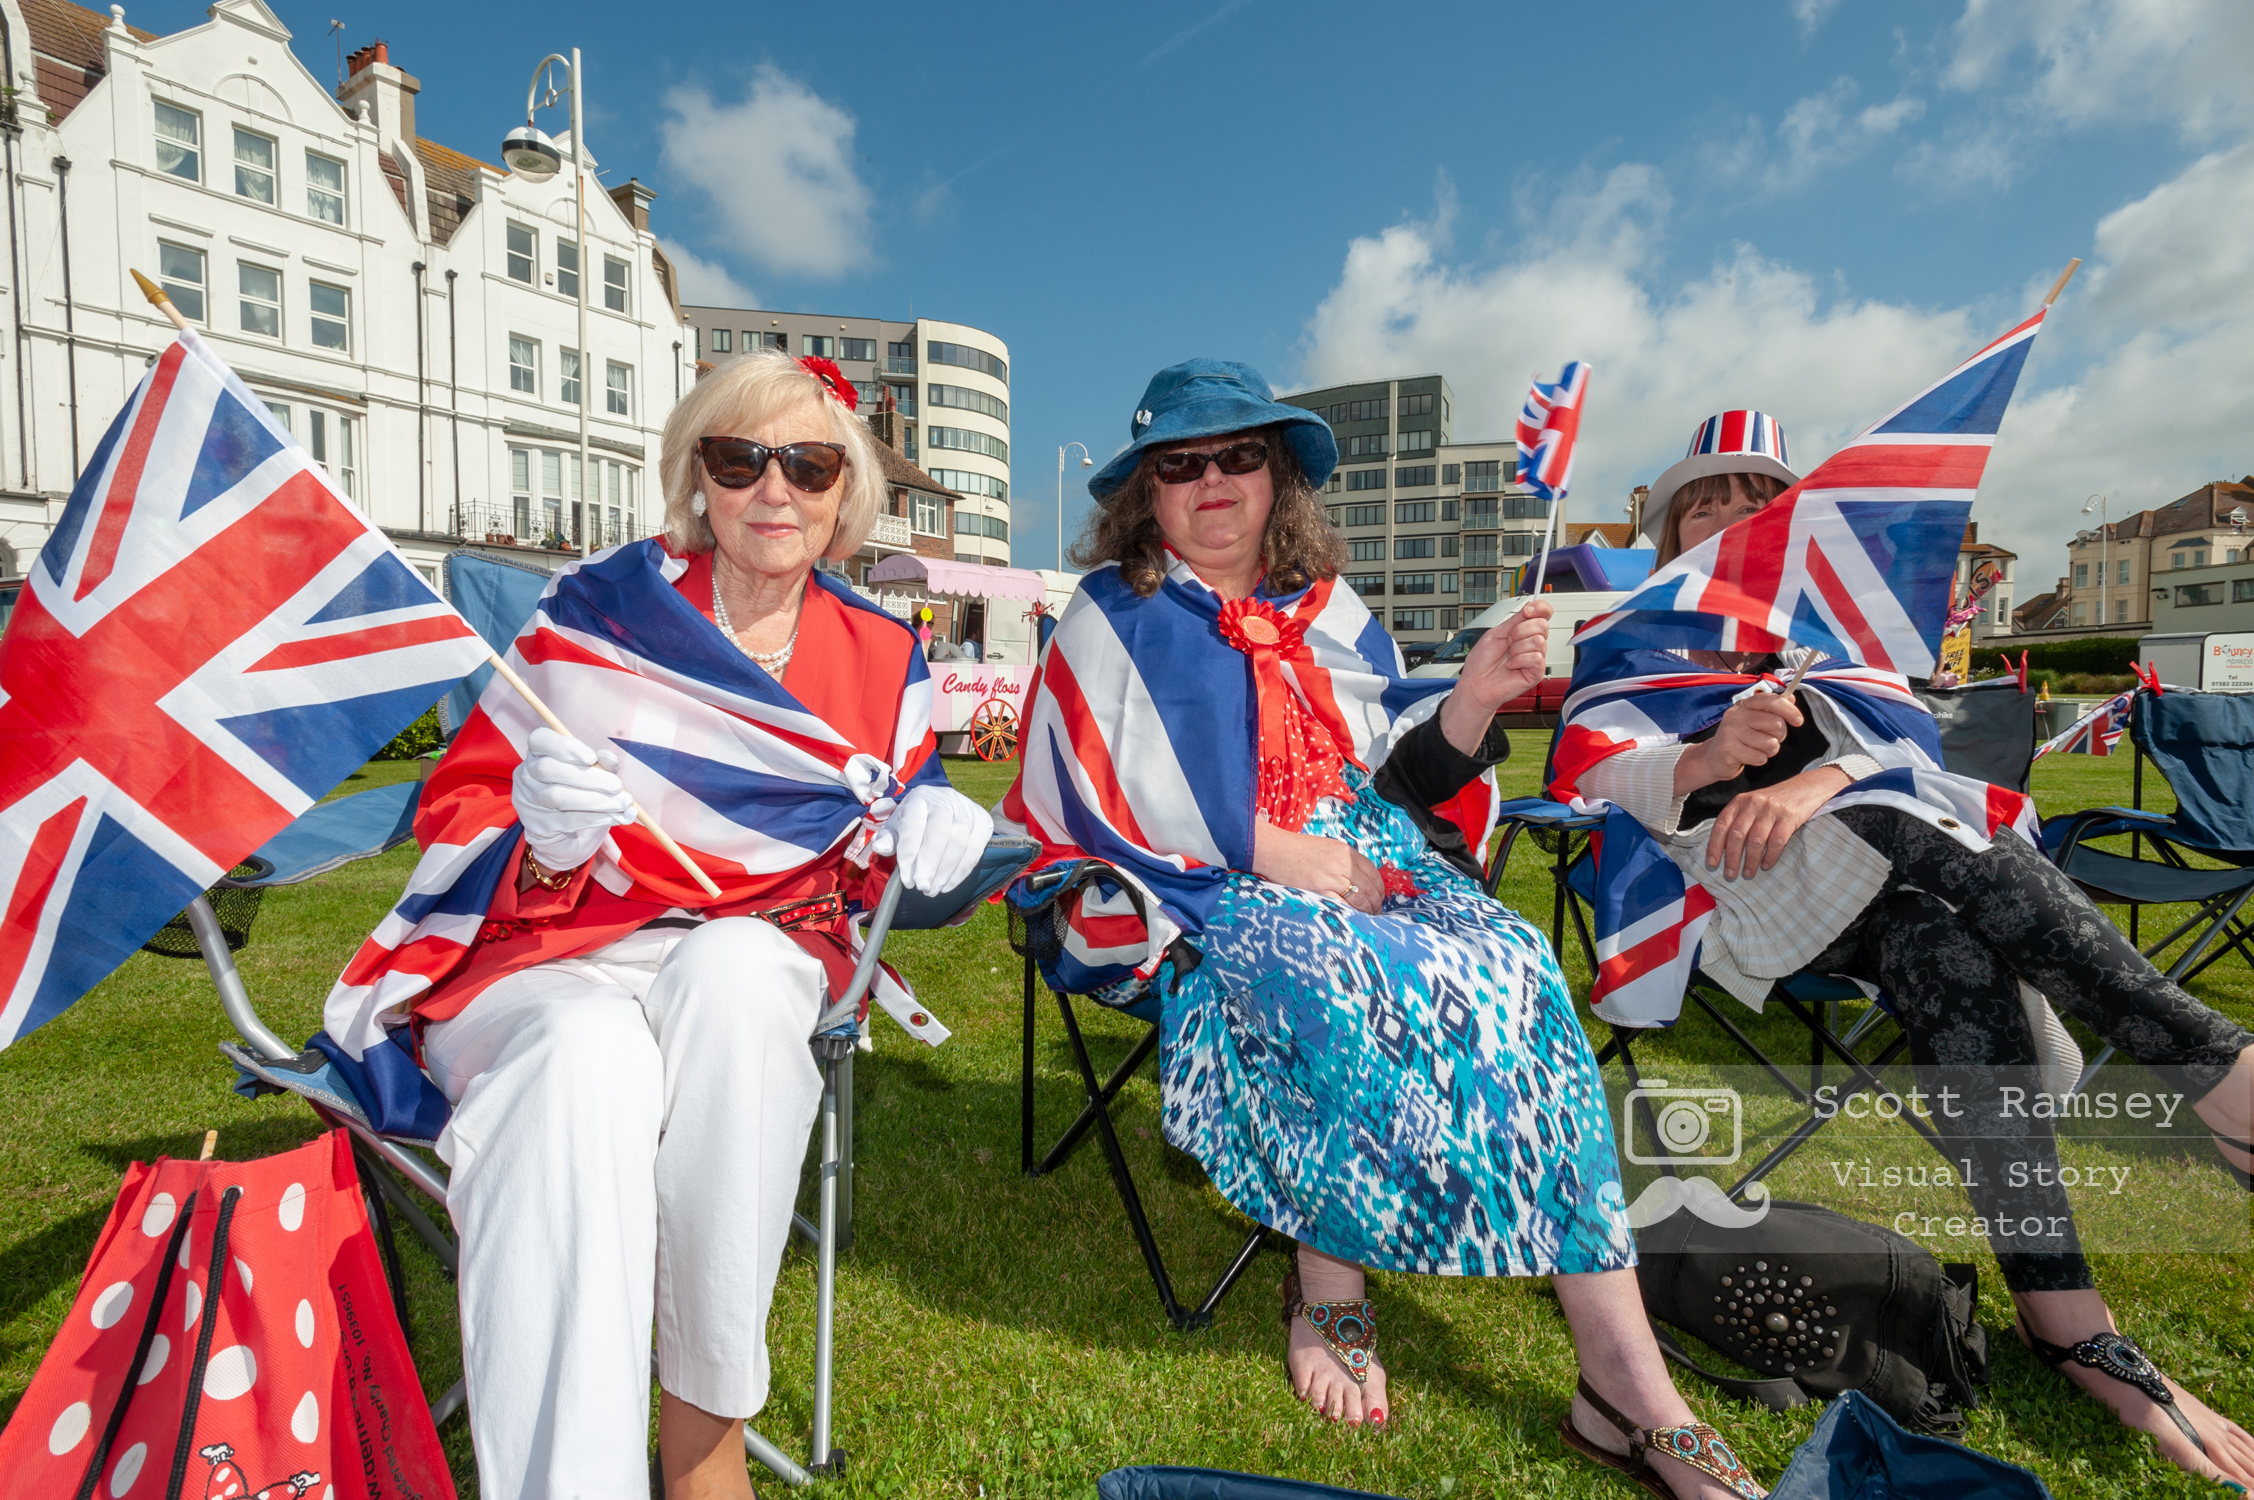 East-Sussex-Editorial-Photographer-Bexhill-Royal-Wedding-Celebrations-©-Scott-Ramsey-www.scottramsey.co.uk-001.jpg